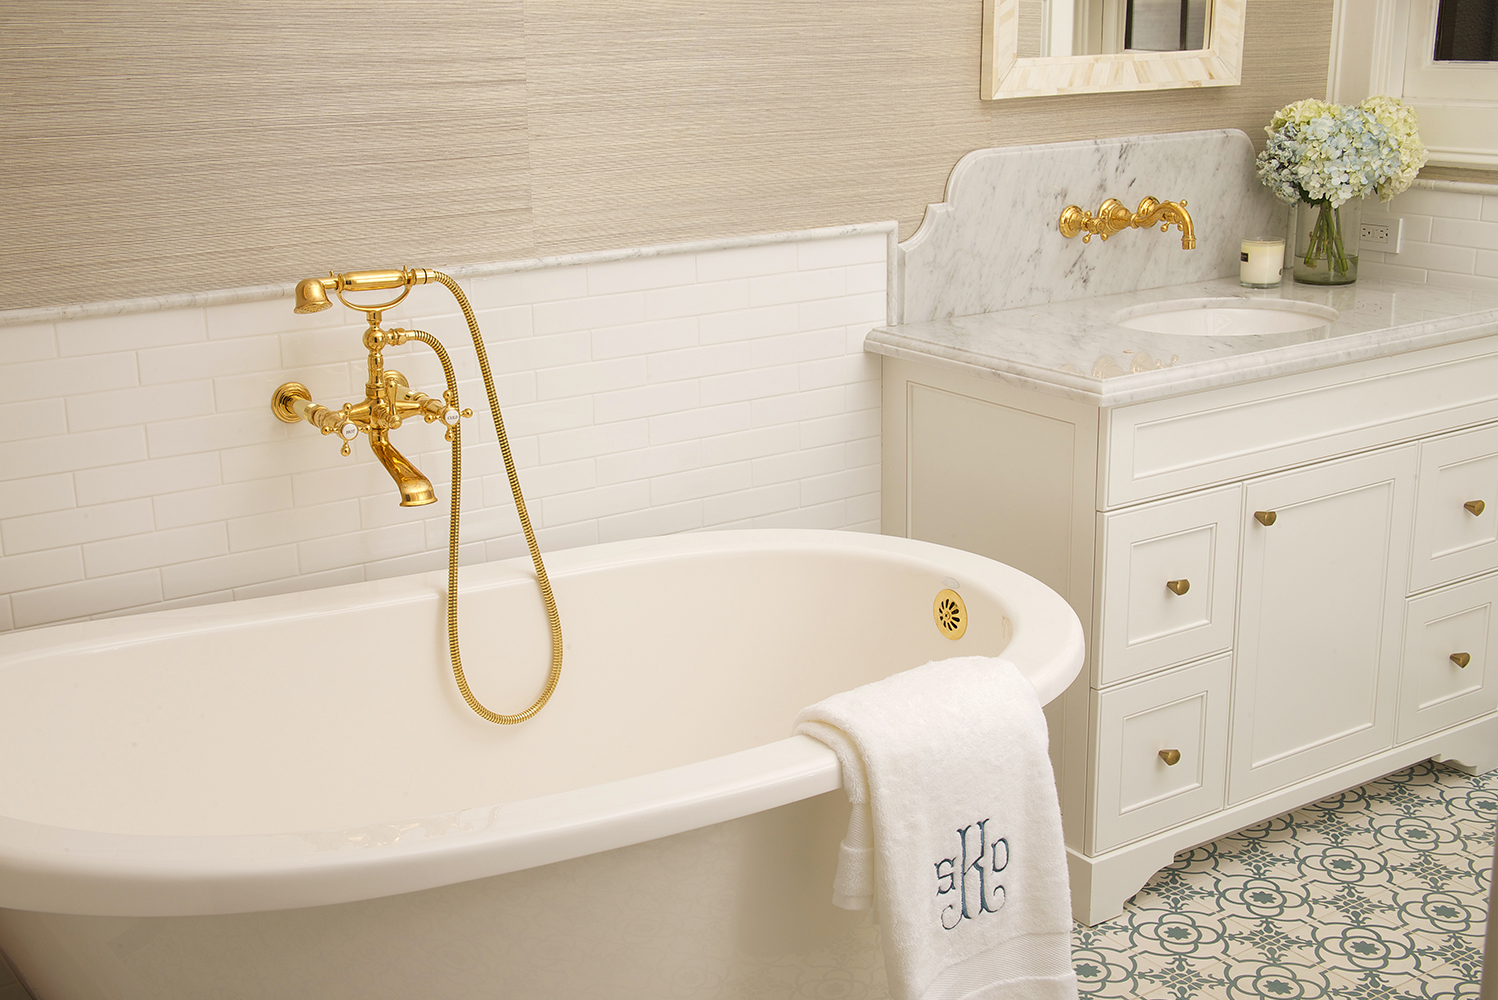 Newport Brass launched the Victoria lavatory faucet and Chesterfield tub filler.